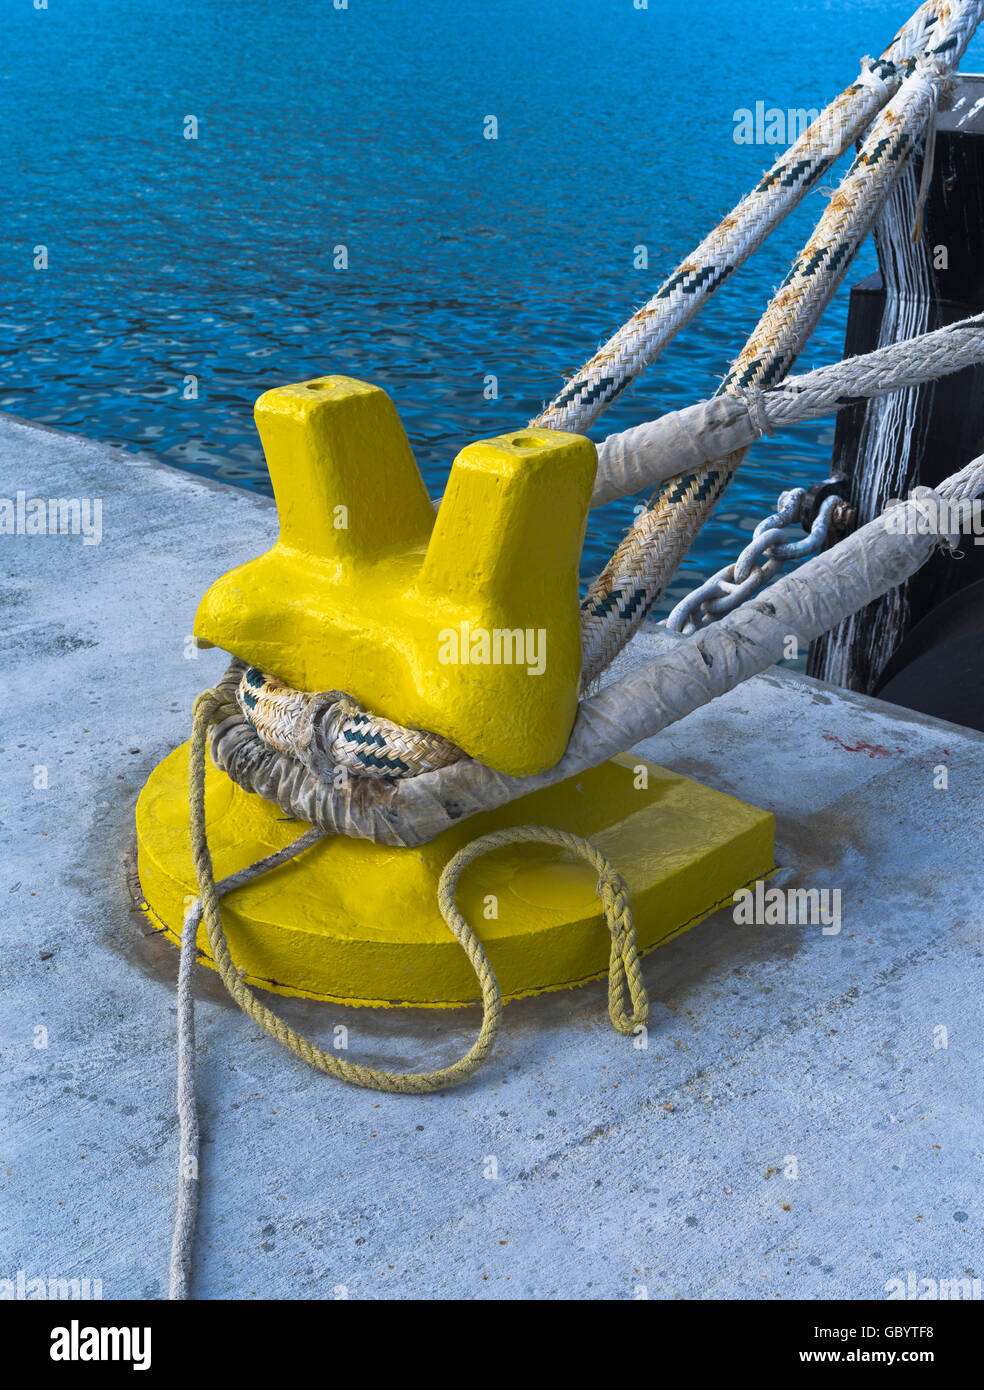 dh Ship mooring BOLLARD AMERICA Ships ropes tied to pier mooring bollard quay side cast iron rope up boat - Stock Image